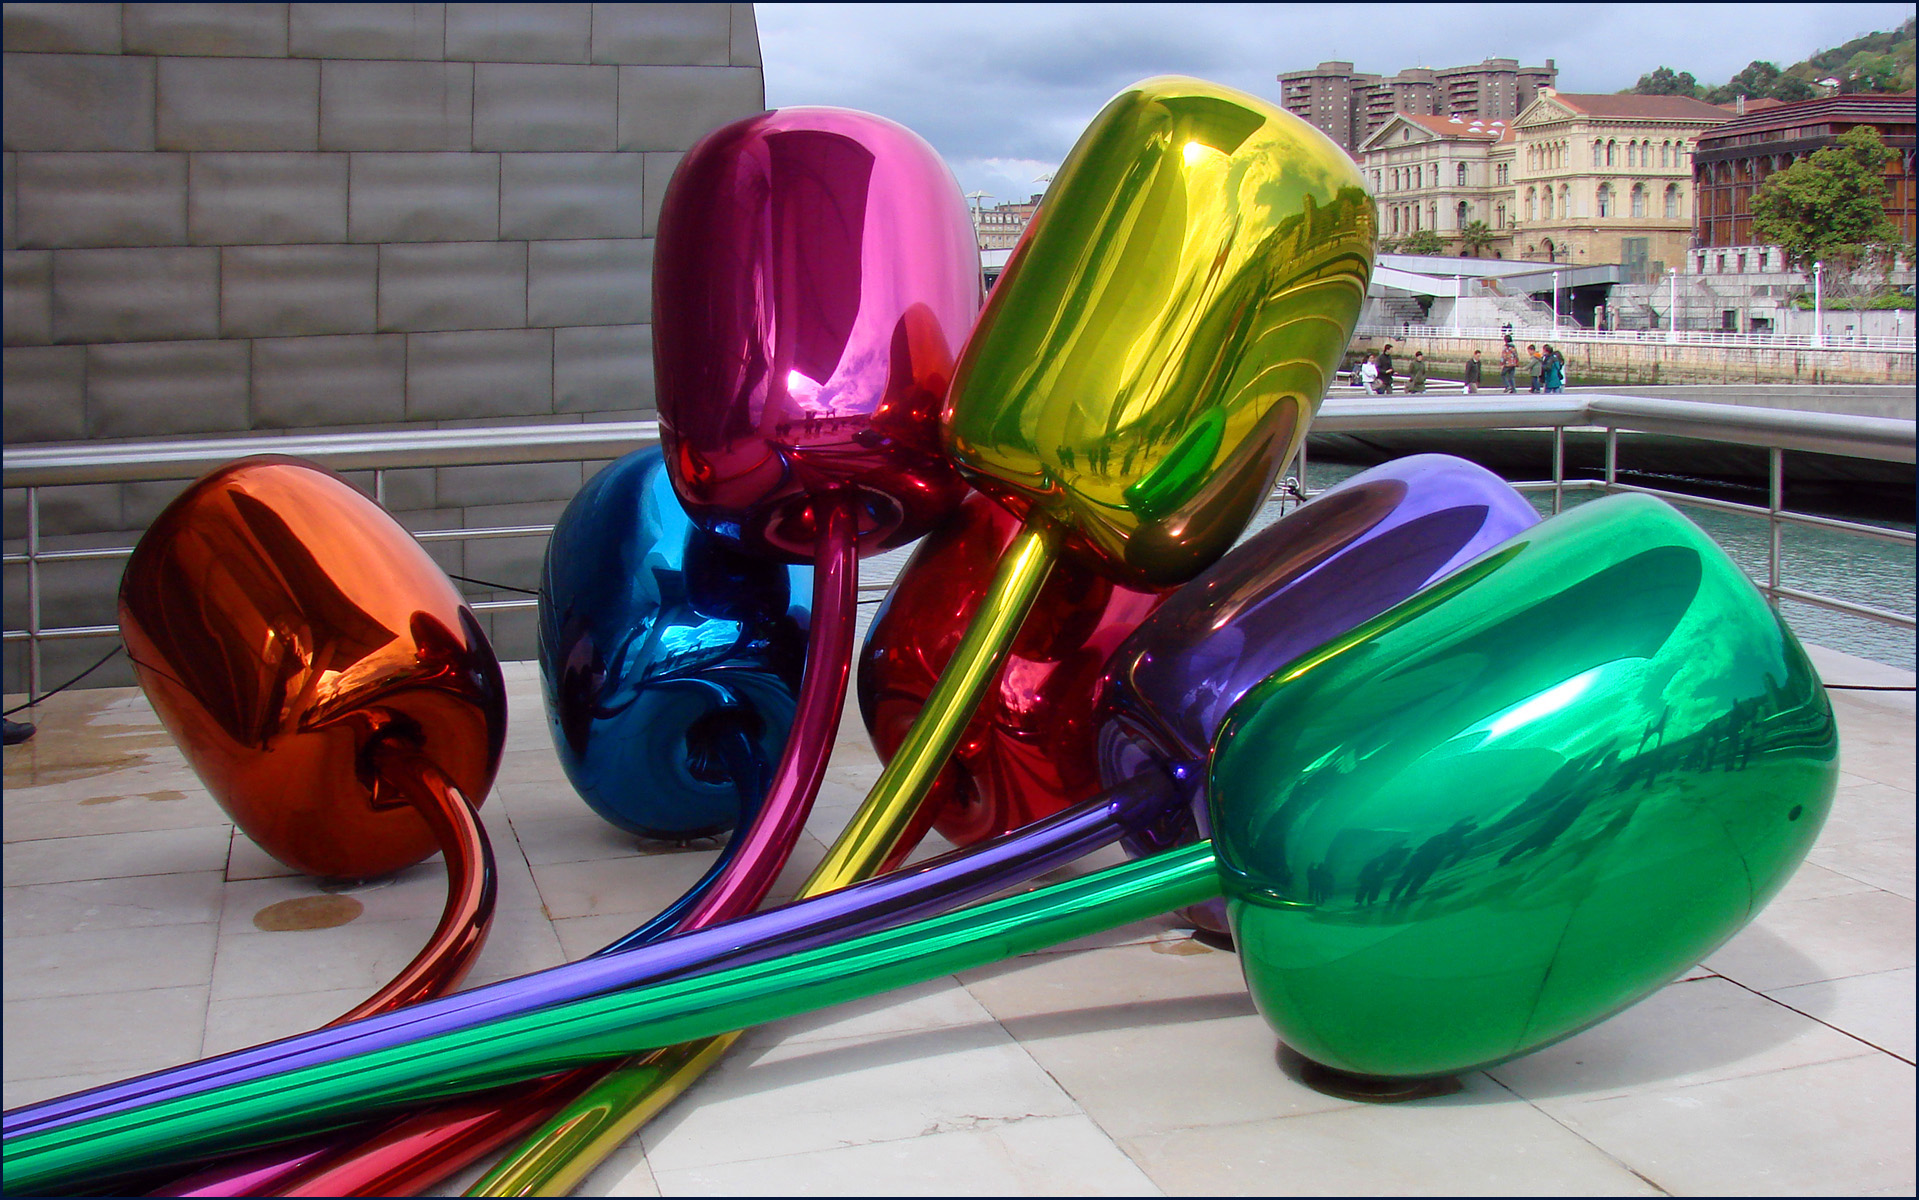 Tulipes de Jeff Koons (musée Guggenheim, Bilbao)  Photo  dalbera from Paris , France [CC-BY-2.0 (http://creativecommons.org/licenses/by/2.0)], via Wikimedia Commons